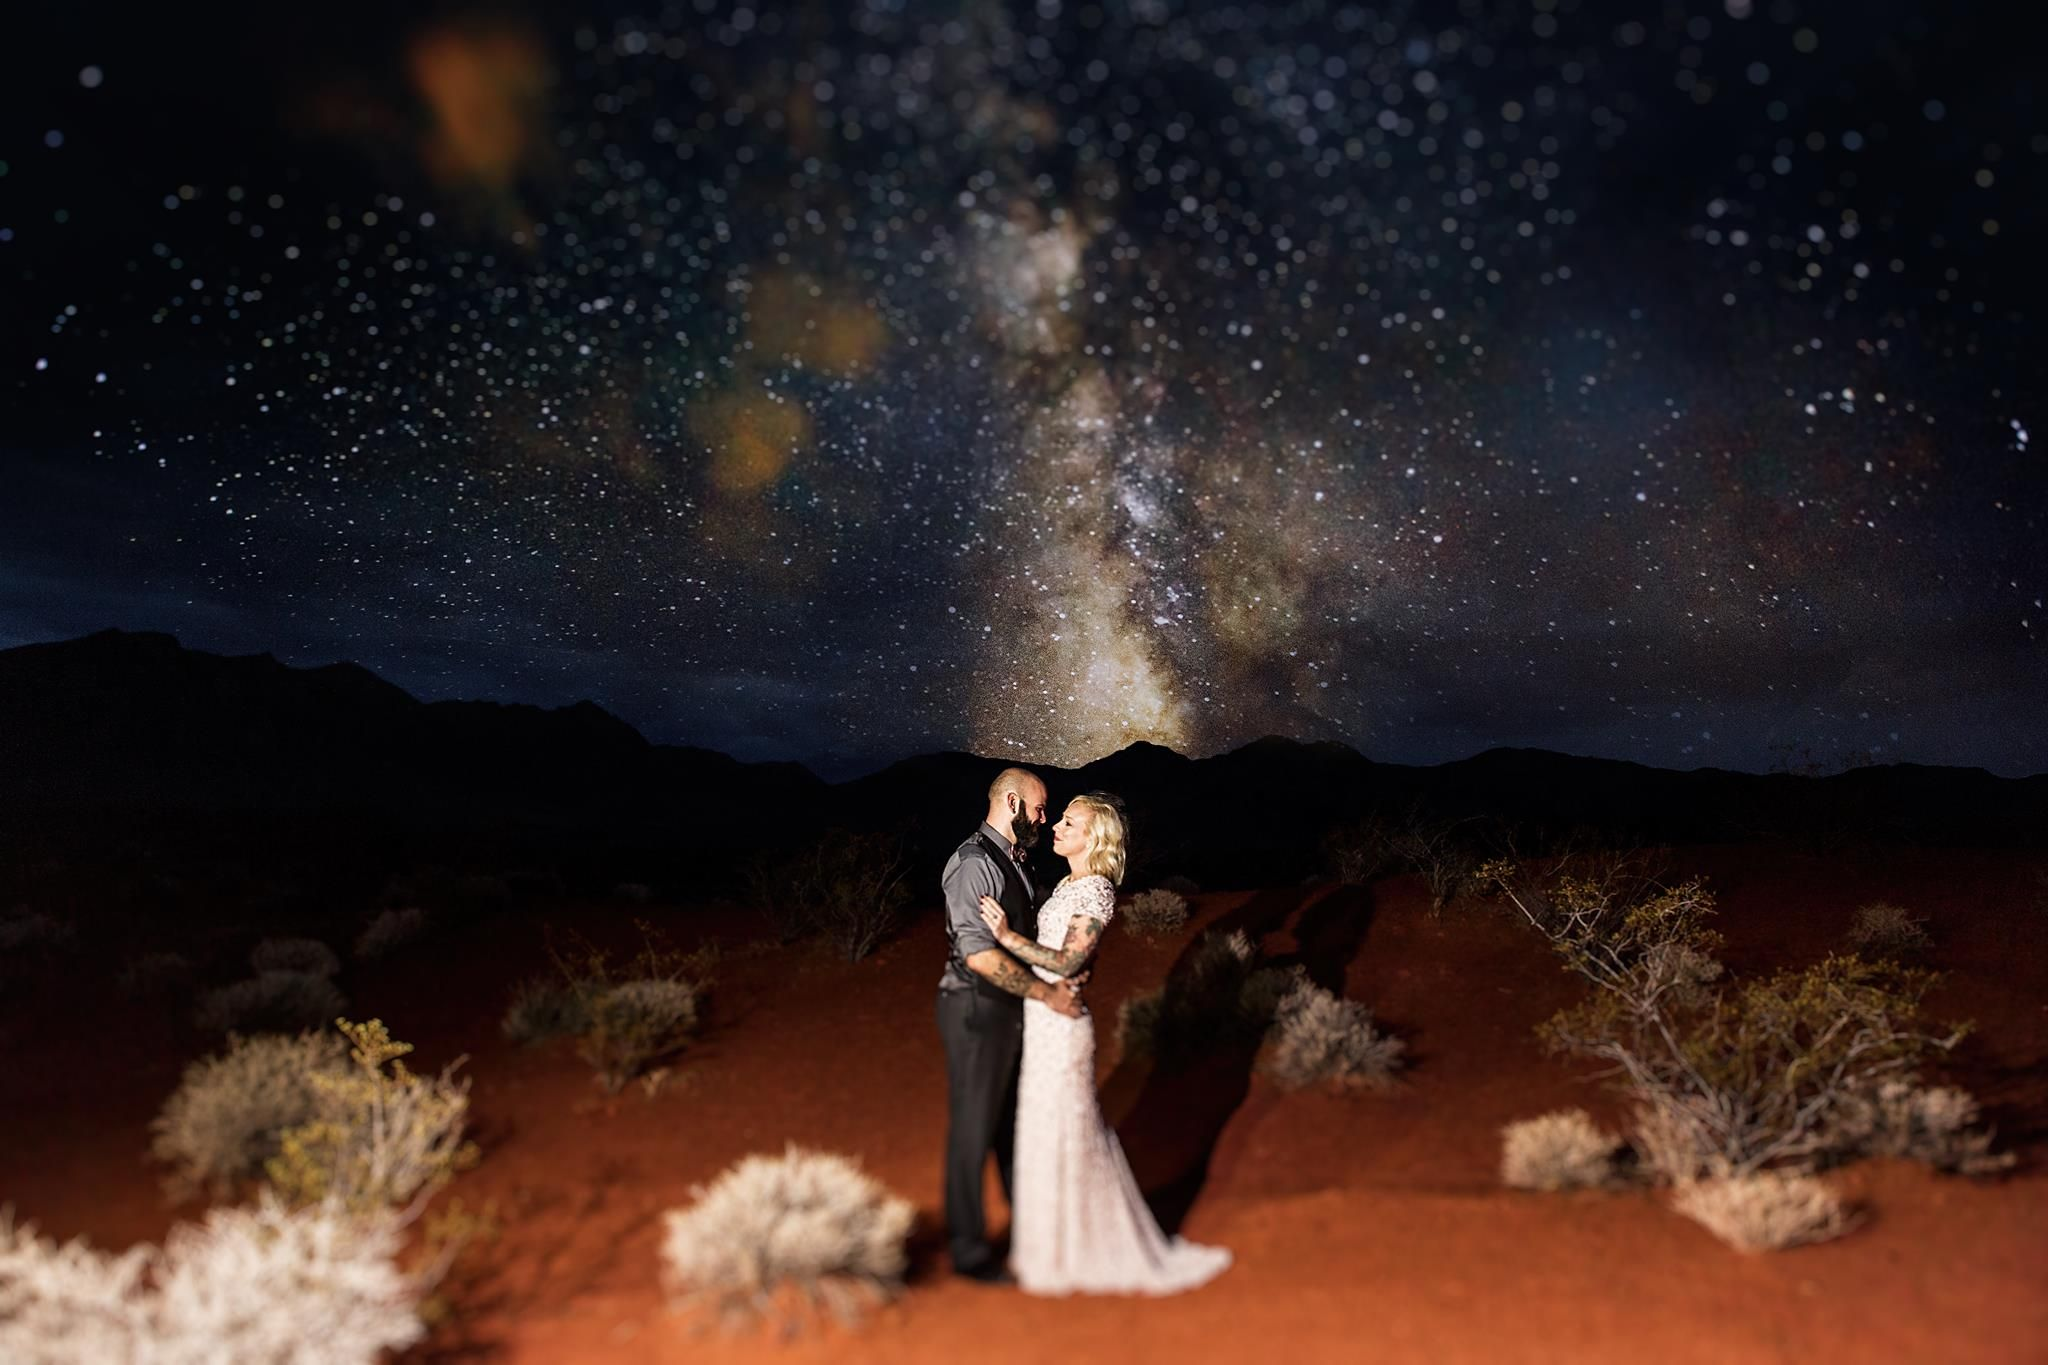 Danette Chappell | The Amberlight Collective | A nighttime desert elopement stylized session with Portra 160 | Tilt + Sharpening in ASE